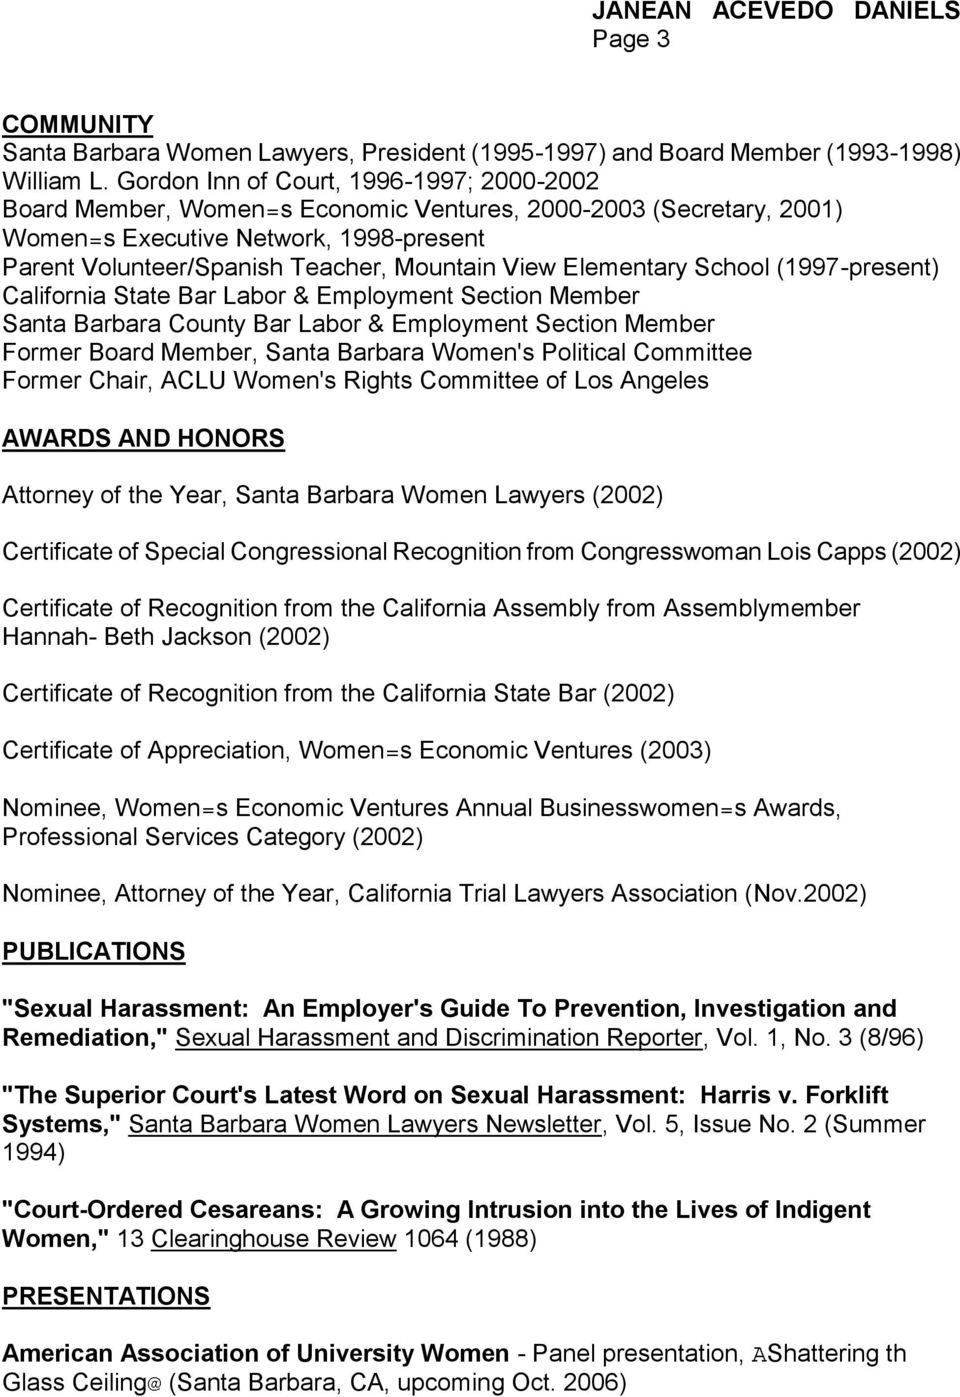 Elementary School (1997-present) California State Bar Labor & Employment Section Member Santa Barbara County Bar Labor & Employment Section Member Former Board Member, Santa Barbara Women's Political